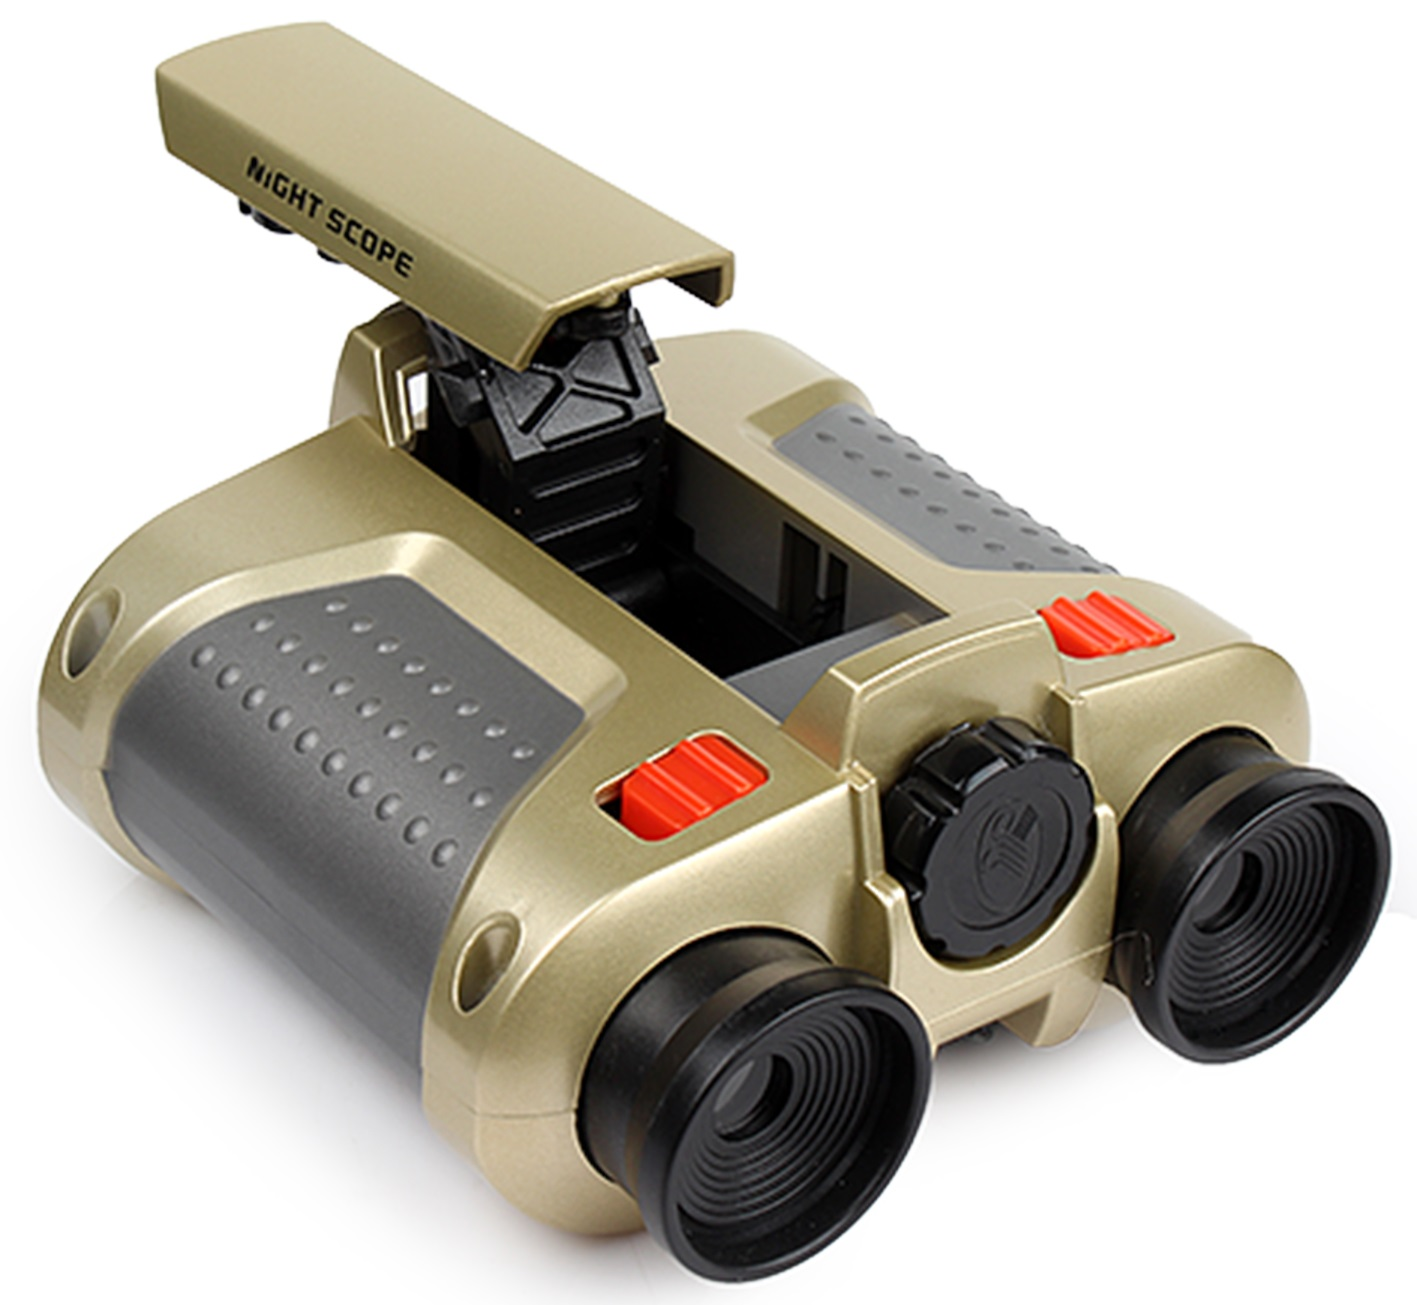 Night Scope Secret Spy Binoculars (For Kids)